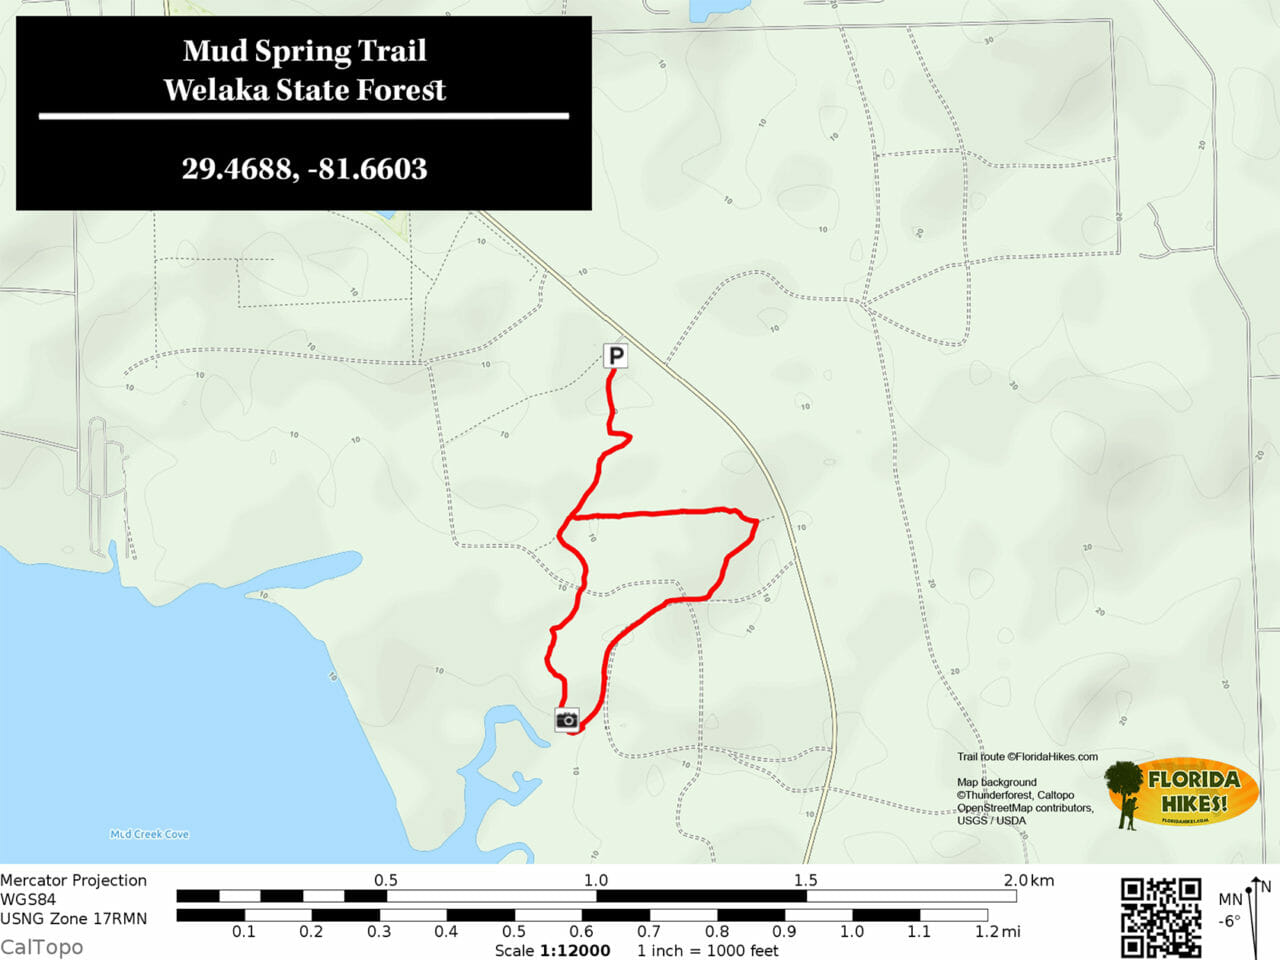 Mud Spring Trail map